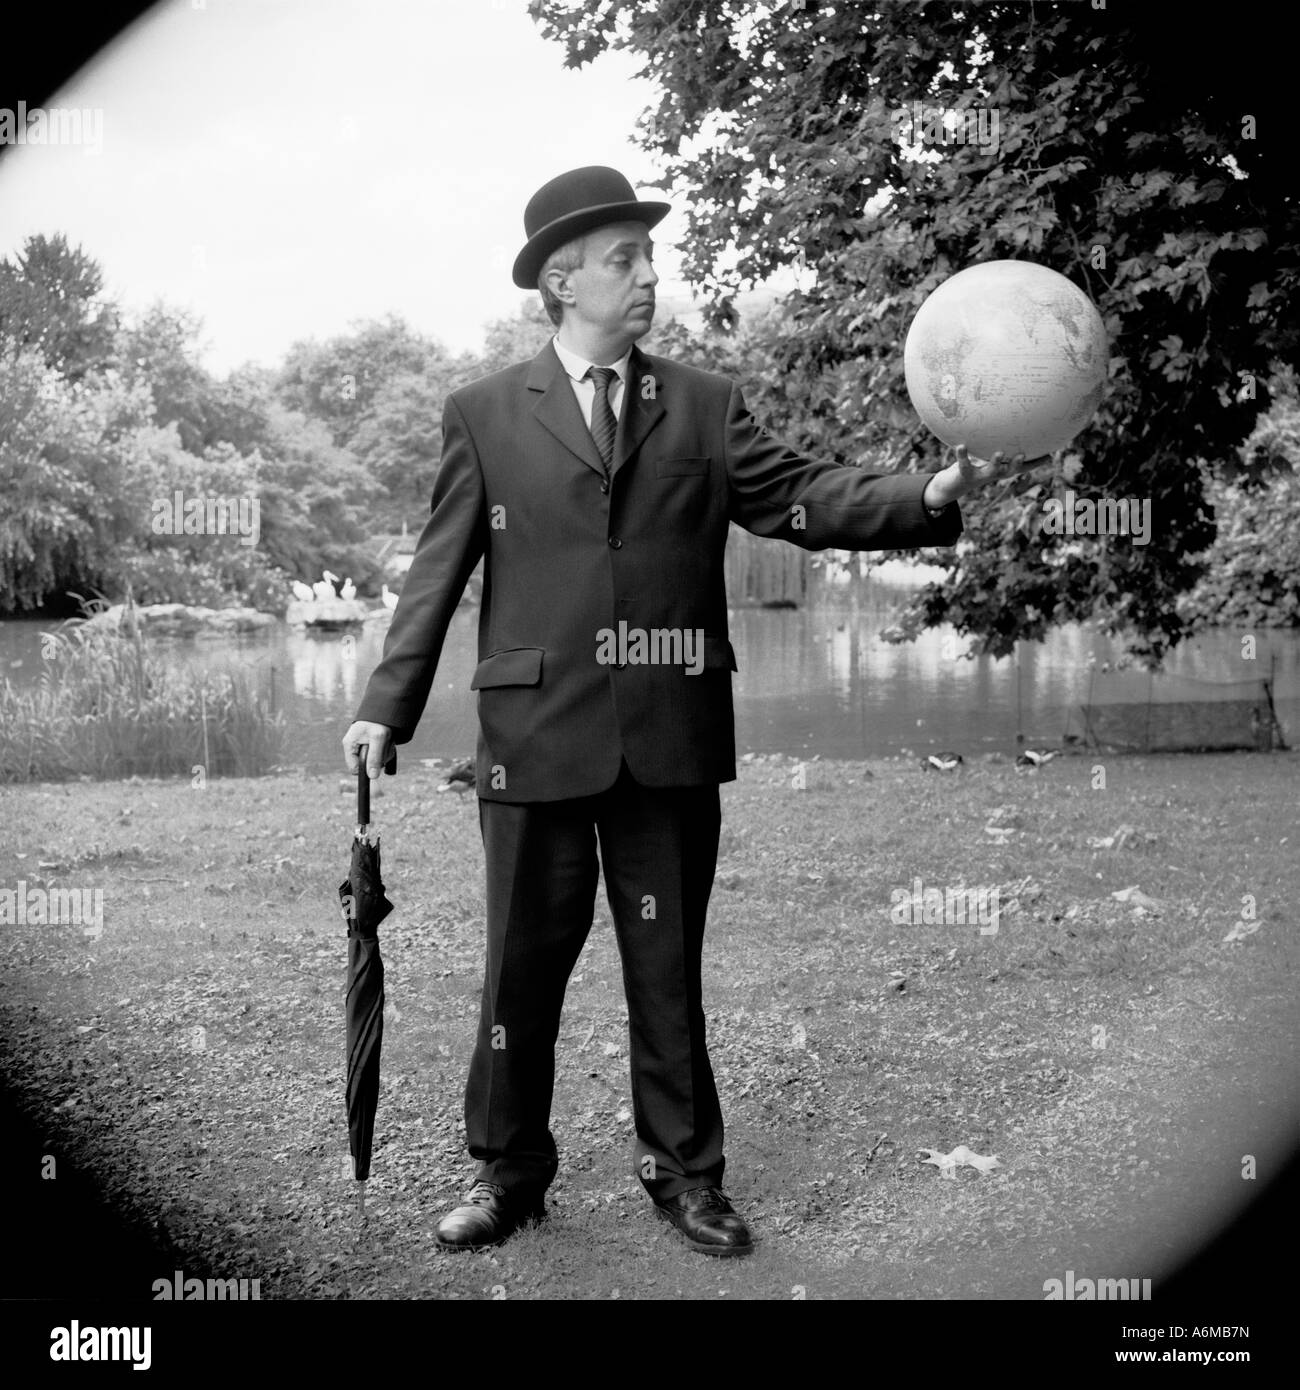 City gent with globe in his hands - Stock Image